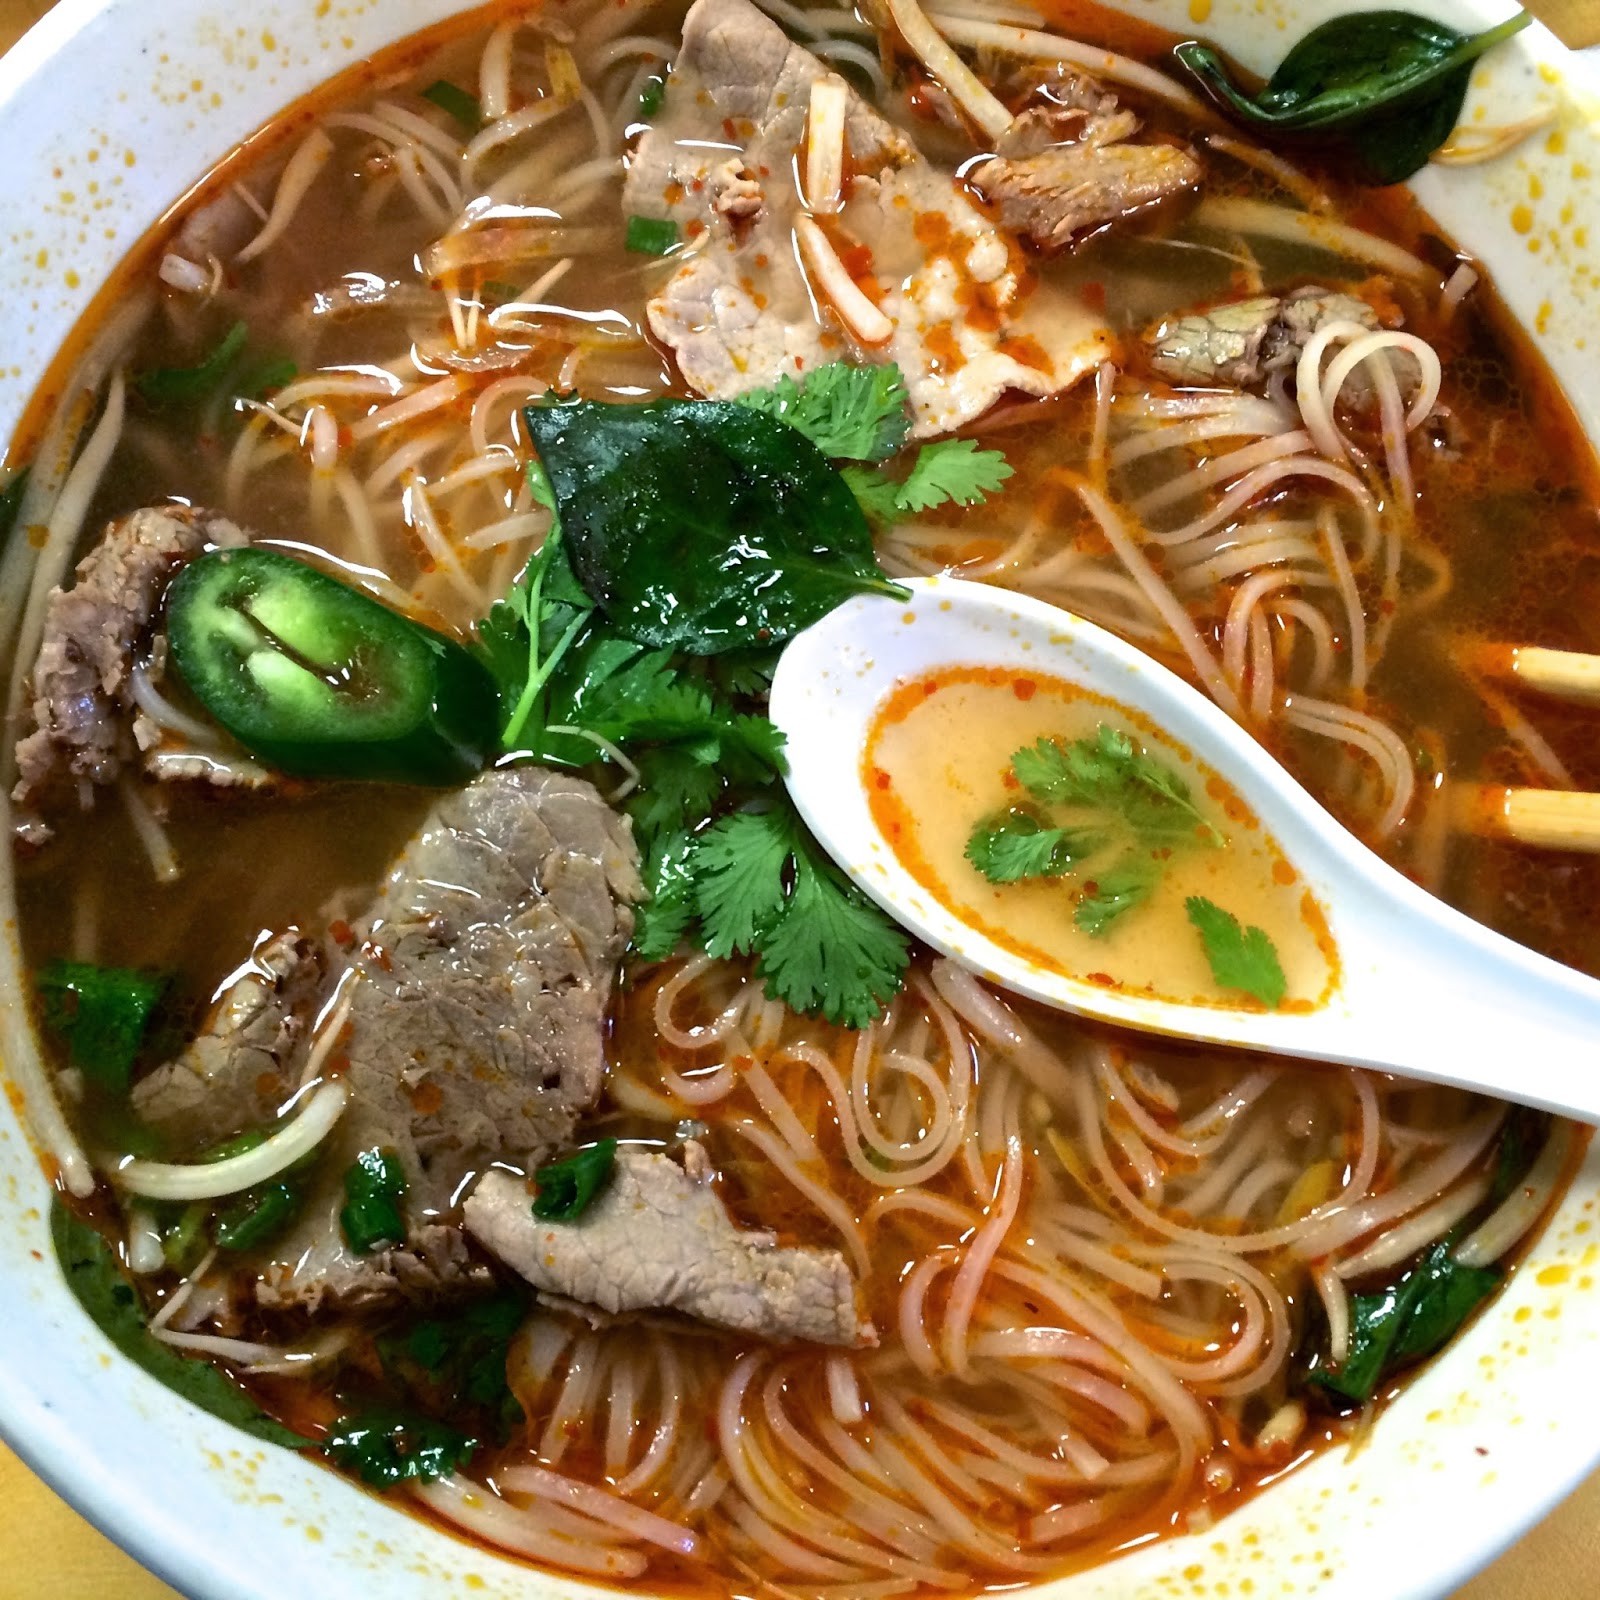 Dream Berrie Café's Pho Tai Chin: Rare Eye Round & Well Done Brisket $7.99